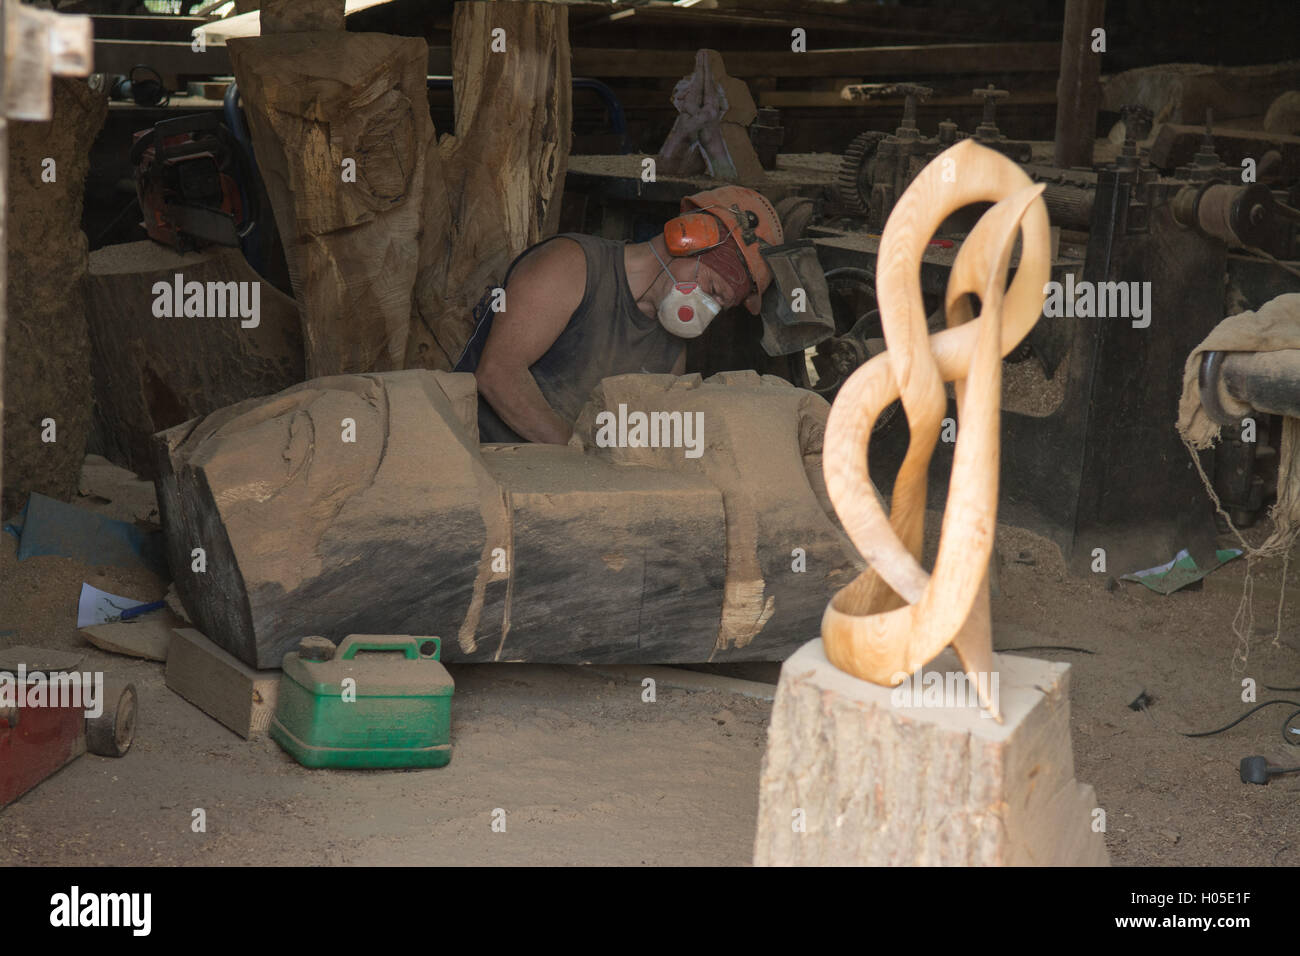 Robert Coia, artist and sculptor at work in his workshop studio at Pollok Country Park, Glasgow, Scotland - Stock Image